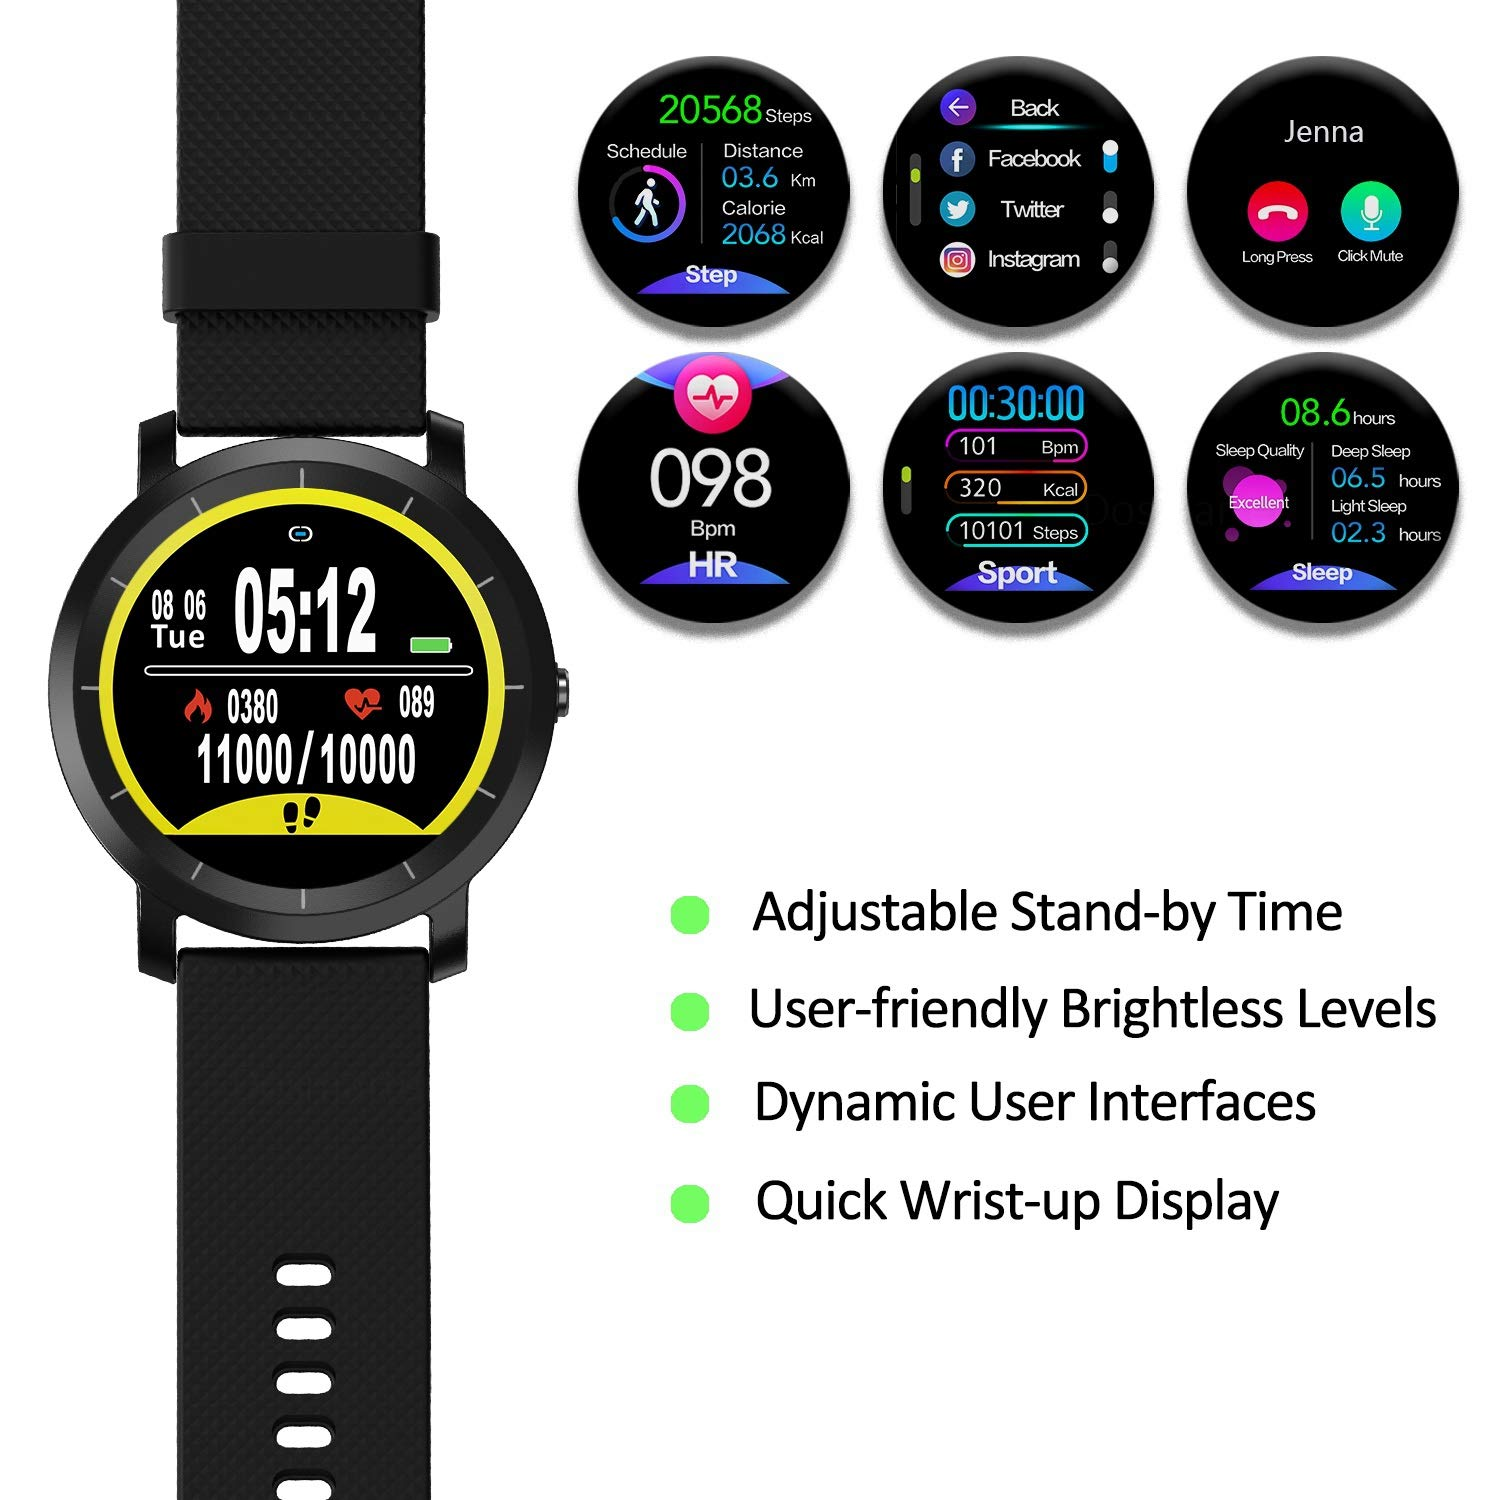 DoSmarter Smart Watch with Connected GPS features